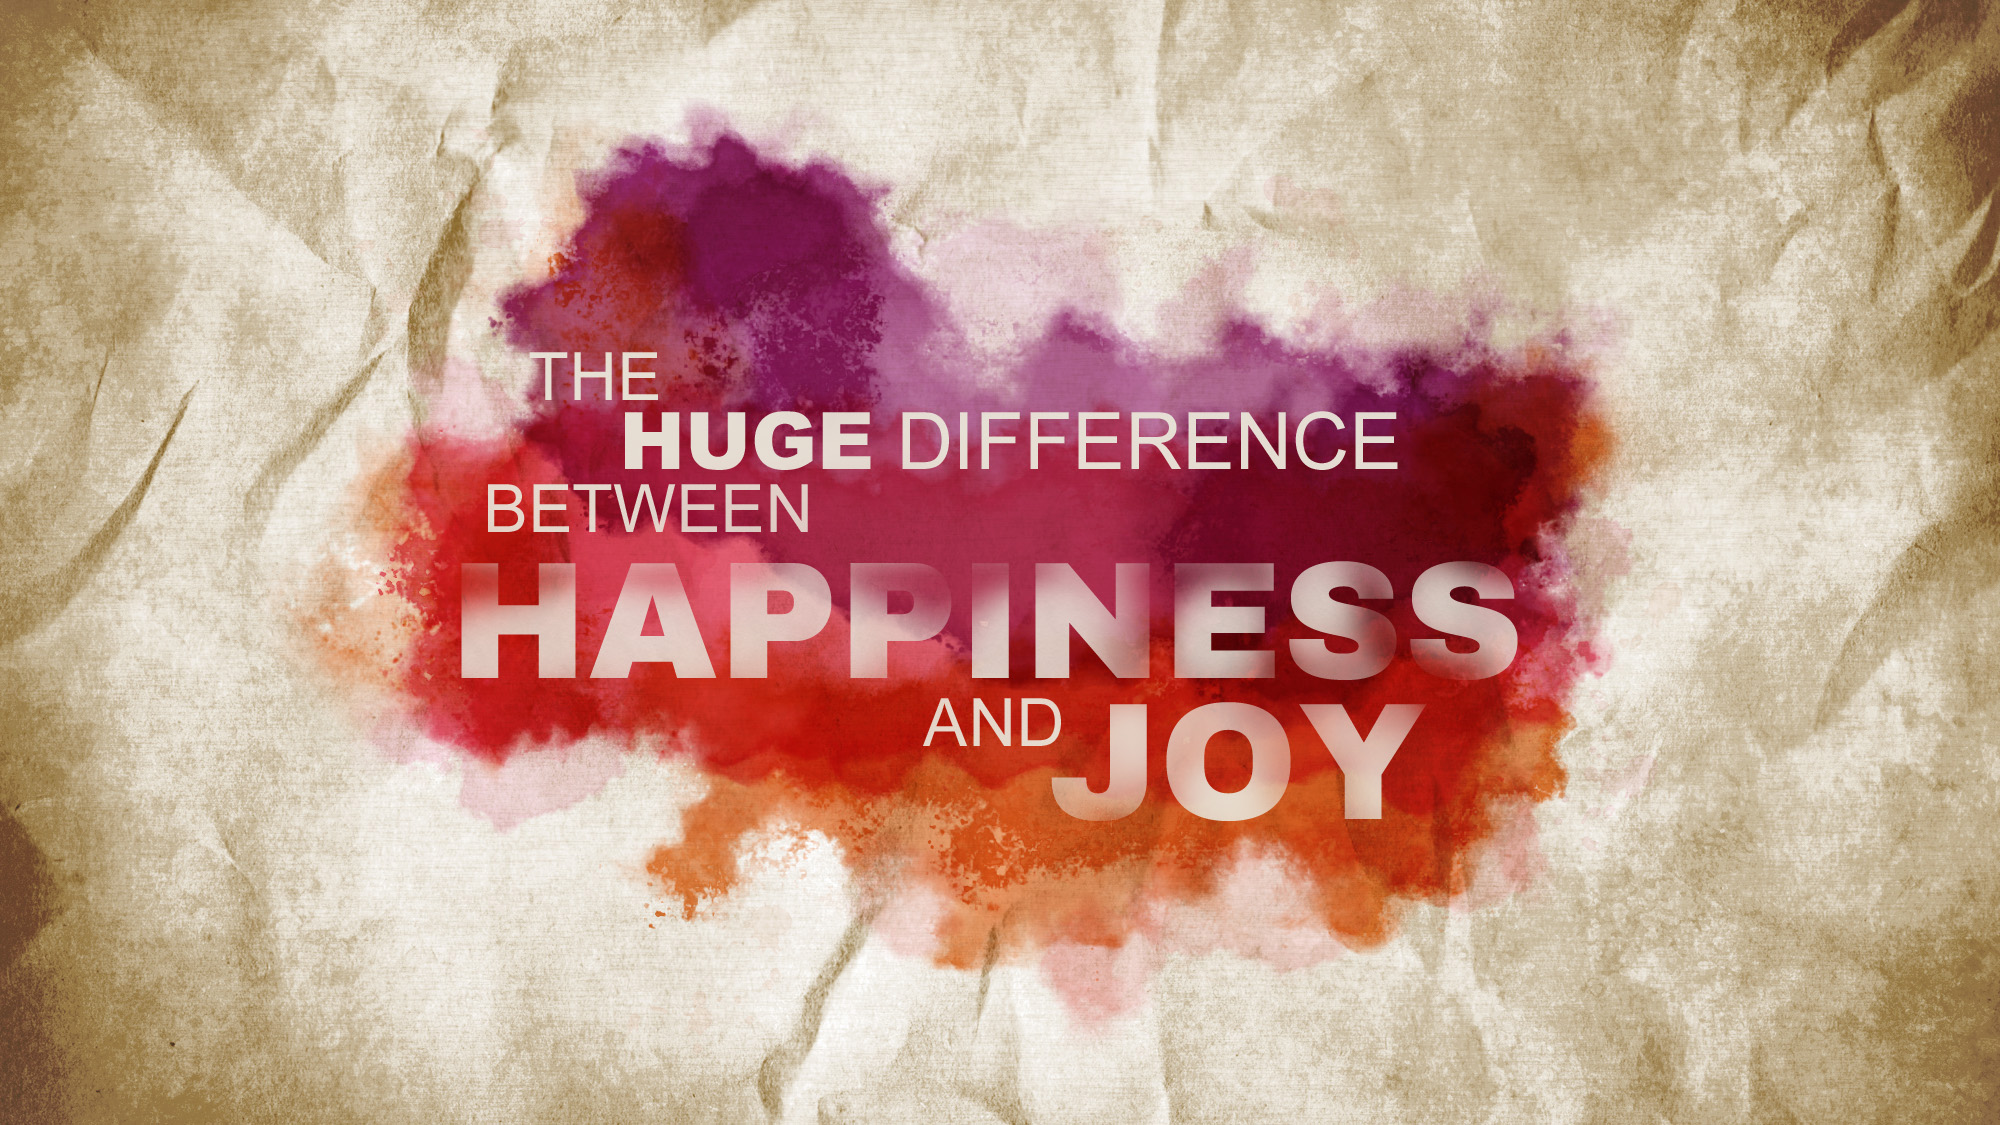 3715 The Huge Difference Between Happiness And Joy Pastor